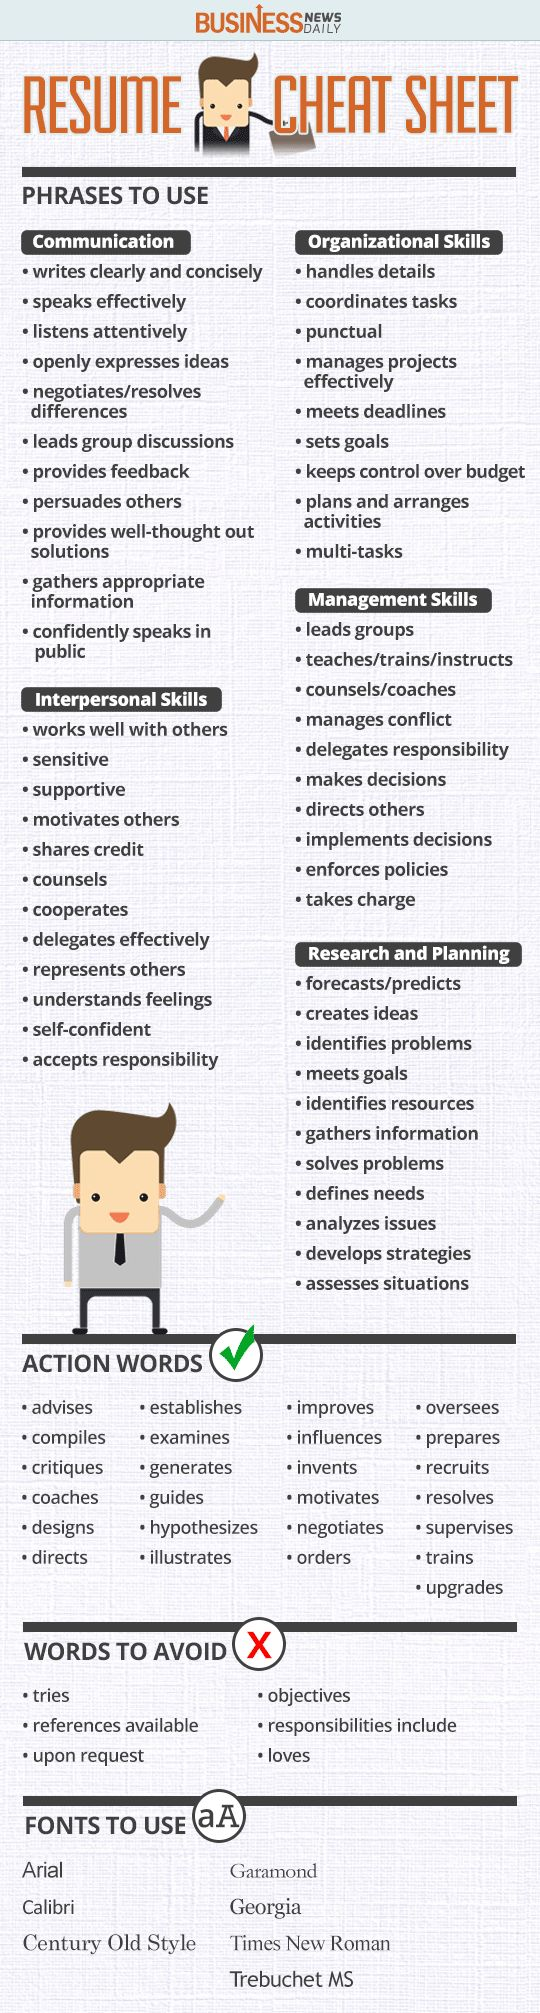 Opposenewapstandardsus  Nice  Ideas About Resume On Pinterest  Cv Format Resume Cv And  With Exquisite Resume Cheat Sheet Infographic Andrews Almost Done With A Complete Unit On Employment Which With Astounding Free Resume Template Also Resume Layout In Addition Resume Template Microsoft Word And Free Resume As Well As Professional Resume Examples Additionally Resume Maker From Pinterestcom With Opposenewapstandardsus  Exquisite  Ideas About Resume On Pinterest  Cv Format Resume Cv And  With Astounding Resume Cheat Sheet Infographic Andrews Almost Done With A Complete Unit On Employment Which And Nice Free Resume Template Also Resume Layout In Addition Resume Template Microsoft Word From Pinterestcom